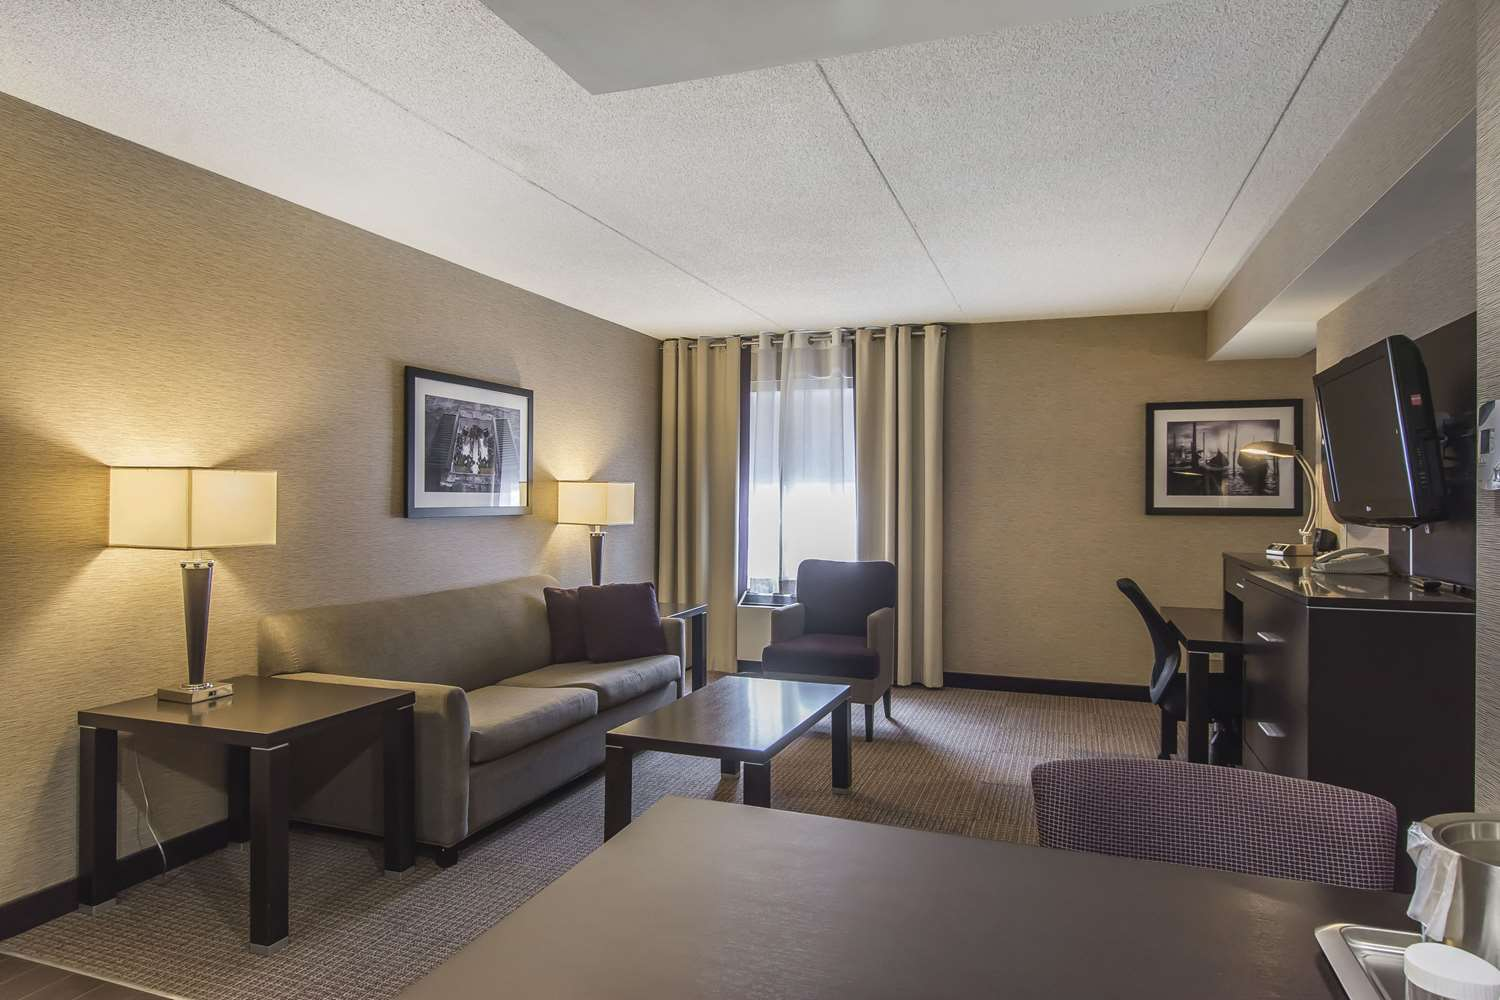 Room - Quattro Hotel & Conference Centre Sault Ste Marie